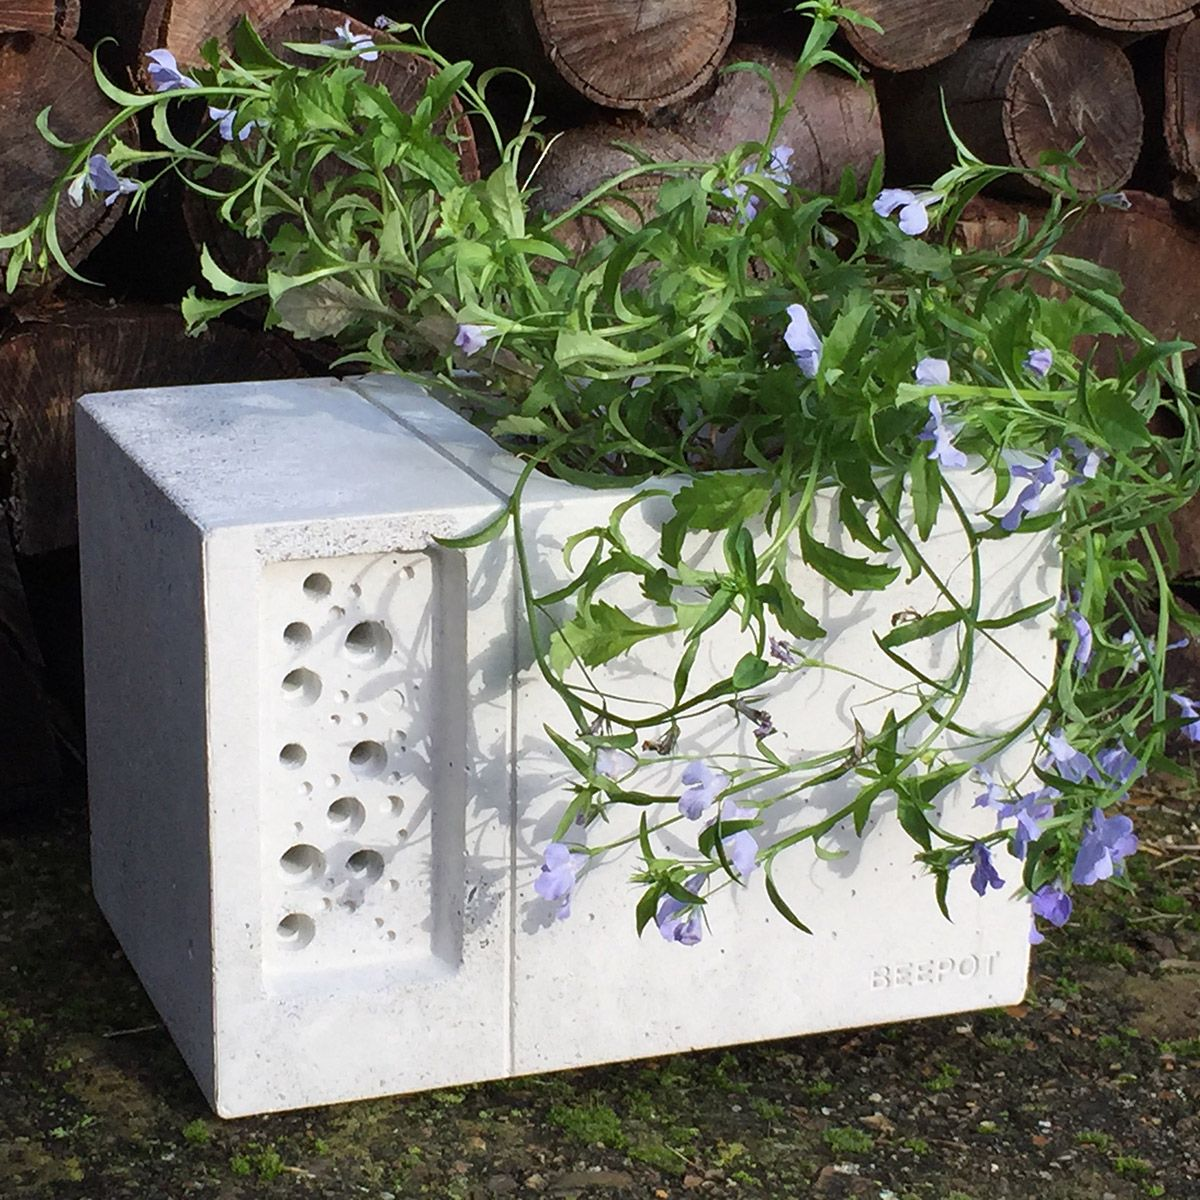 The Beepot Bee Hotel Is A Beautiful Concrete Planter Inspired By The Award  Winning Bee Brick, Only This Time Weu0027ve Added A Diner On The Bees Doorstep!